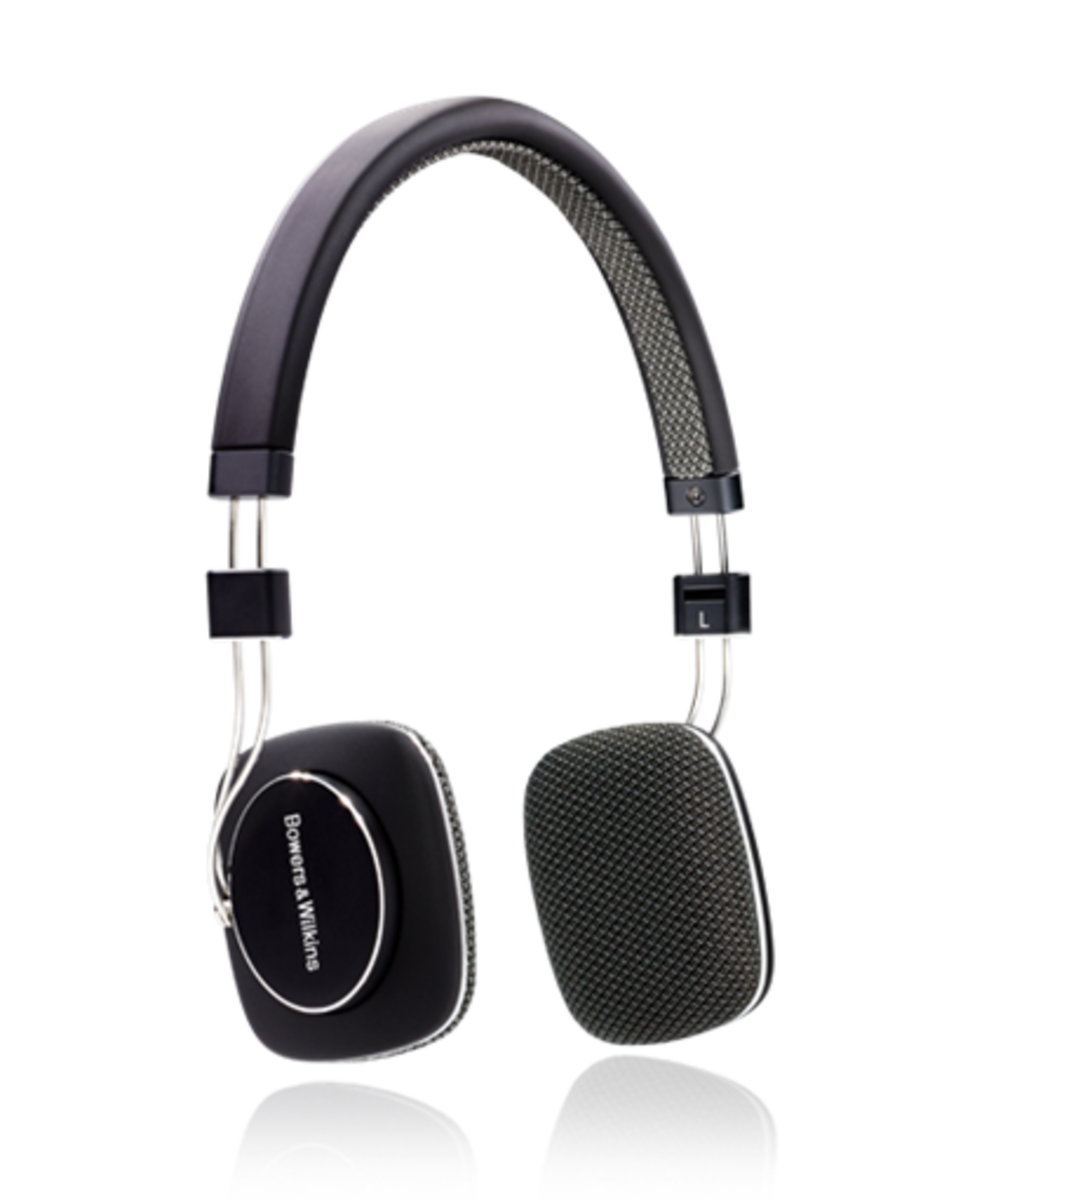 The Bowers & Wilkins P3